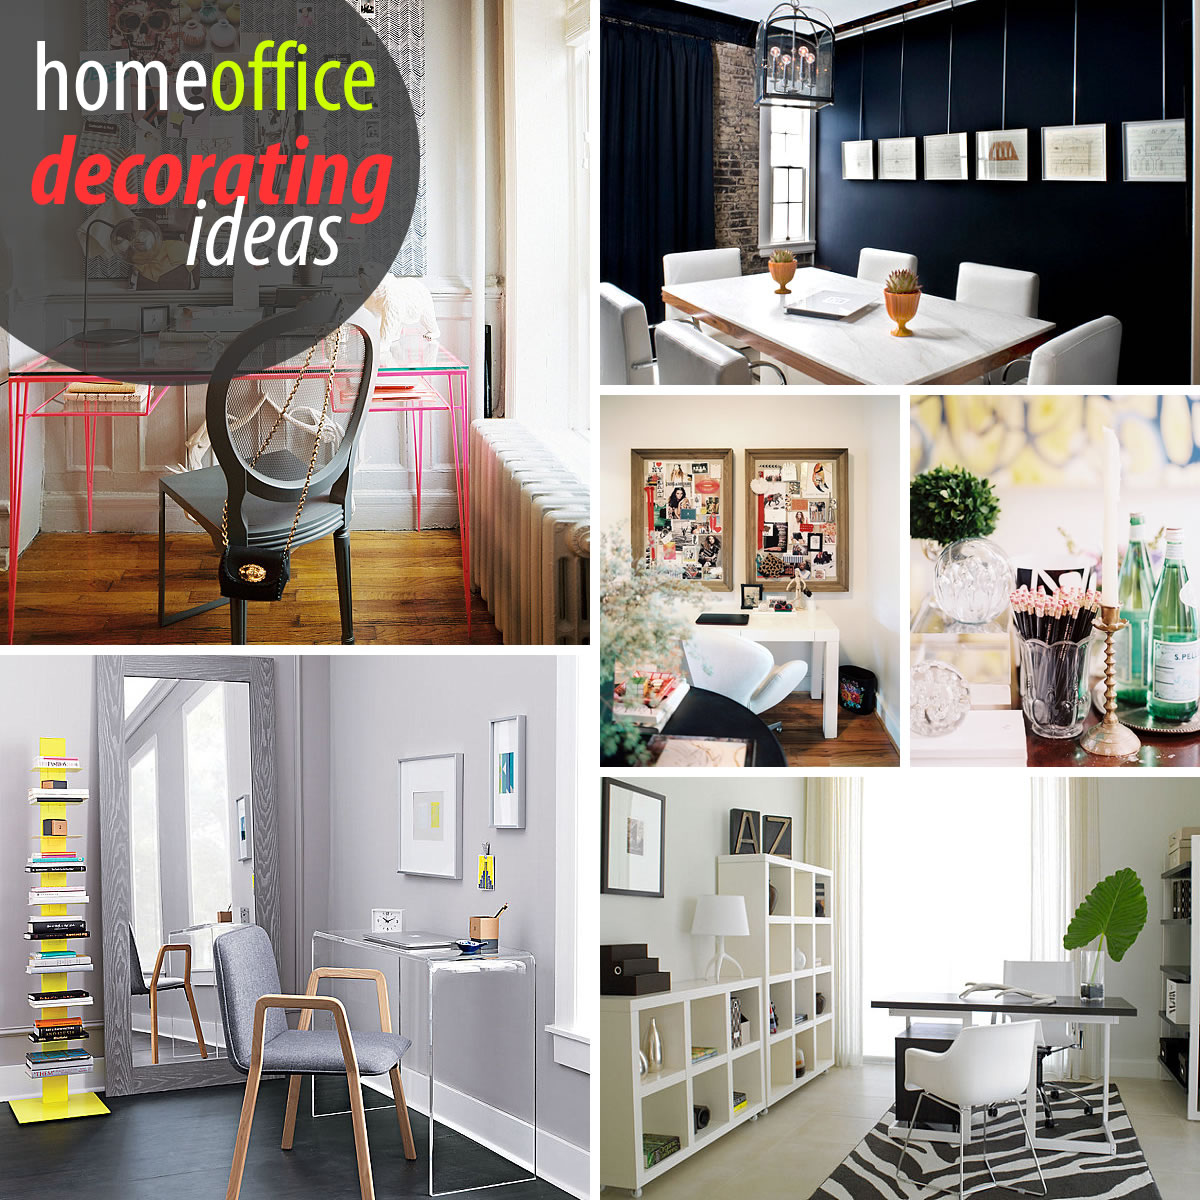 Home Design Ideas Build: Creative Home Office Decorating Ideas